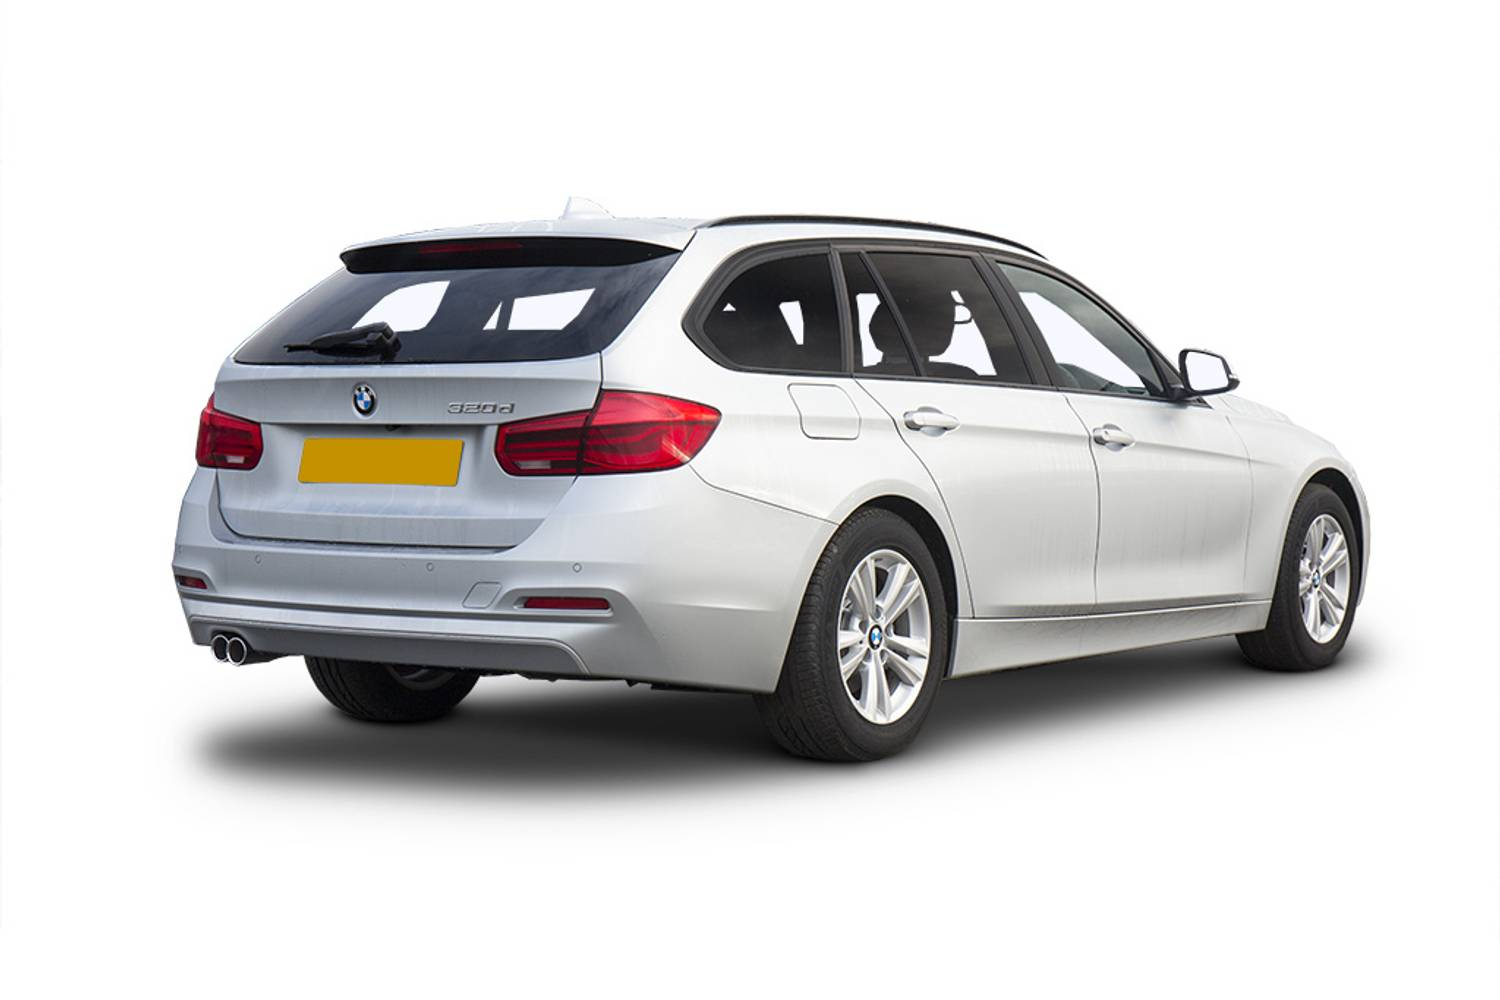 BMW 3 Series Touring 5dr Rear Three Quarter